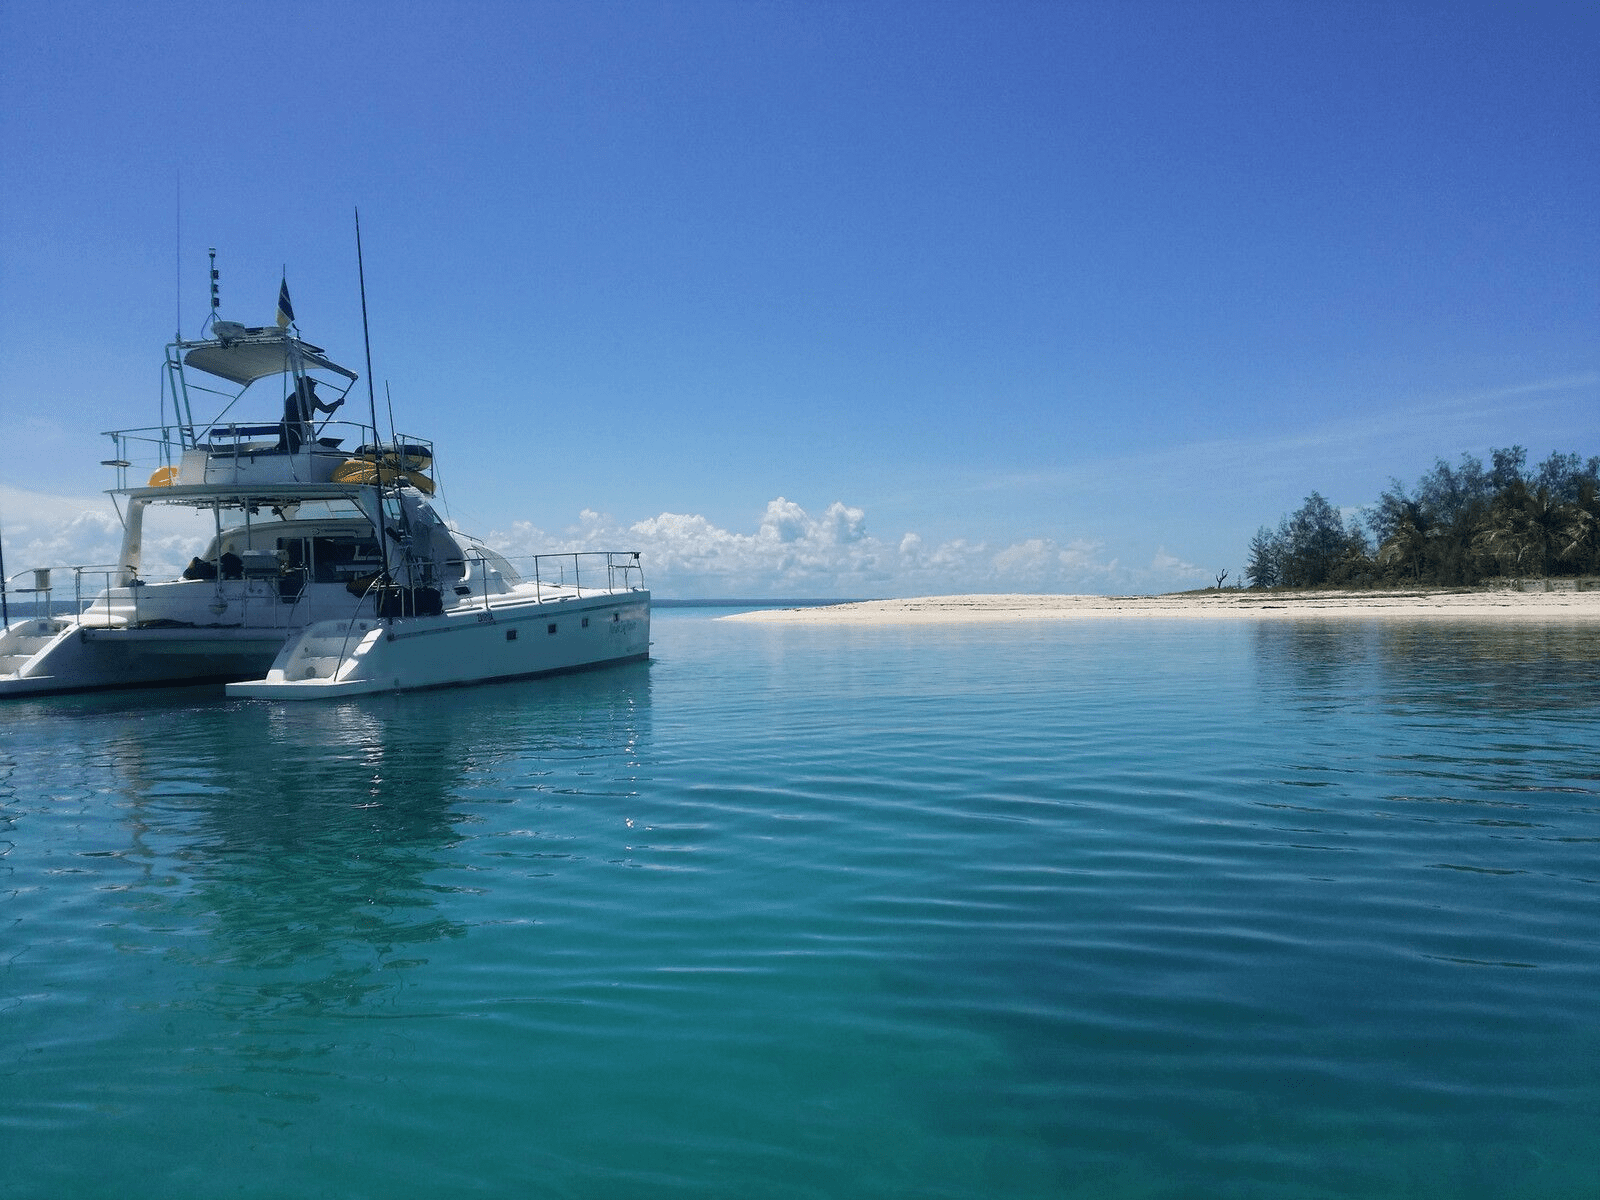 catamaran heading through blue waters to a white sand shore, with blue skies and clouds in the background